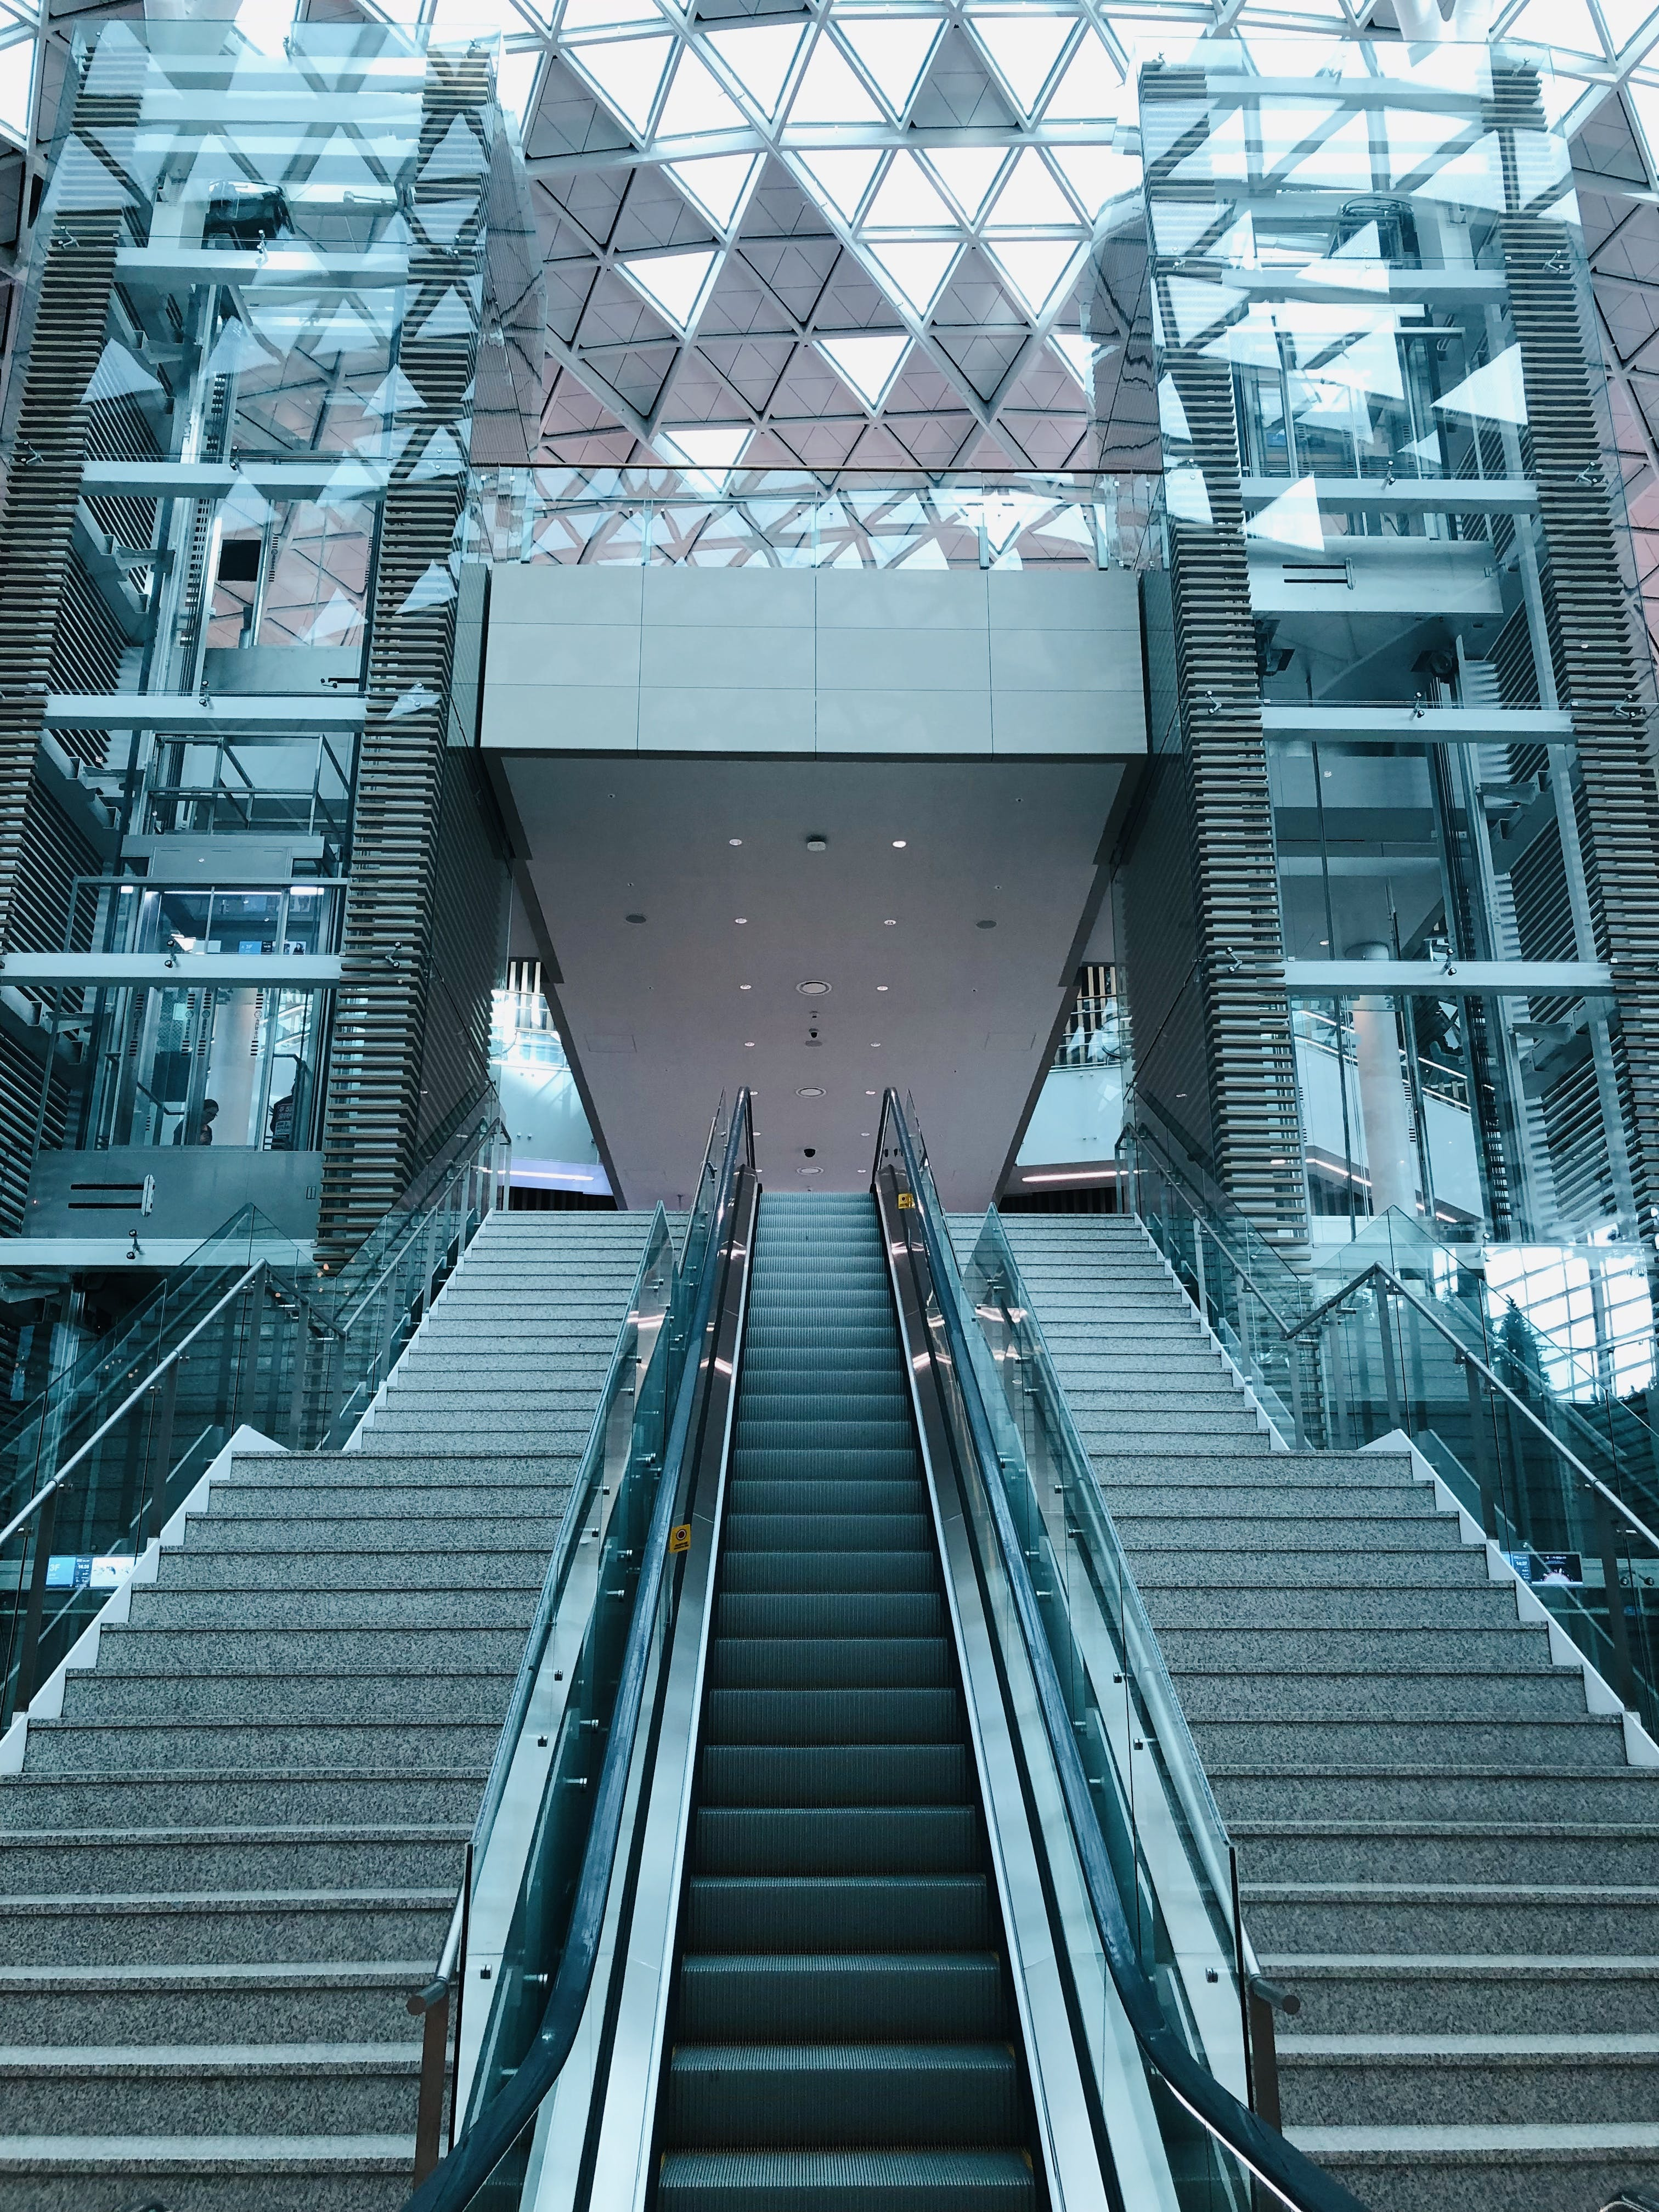 Photo of Escalator and Staircase